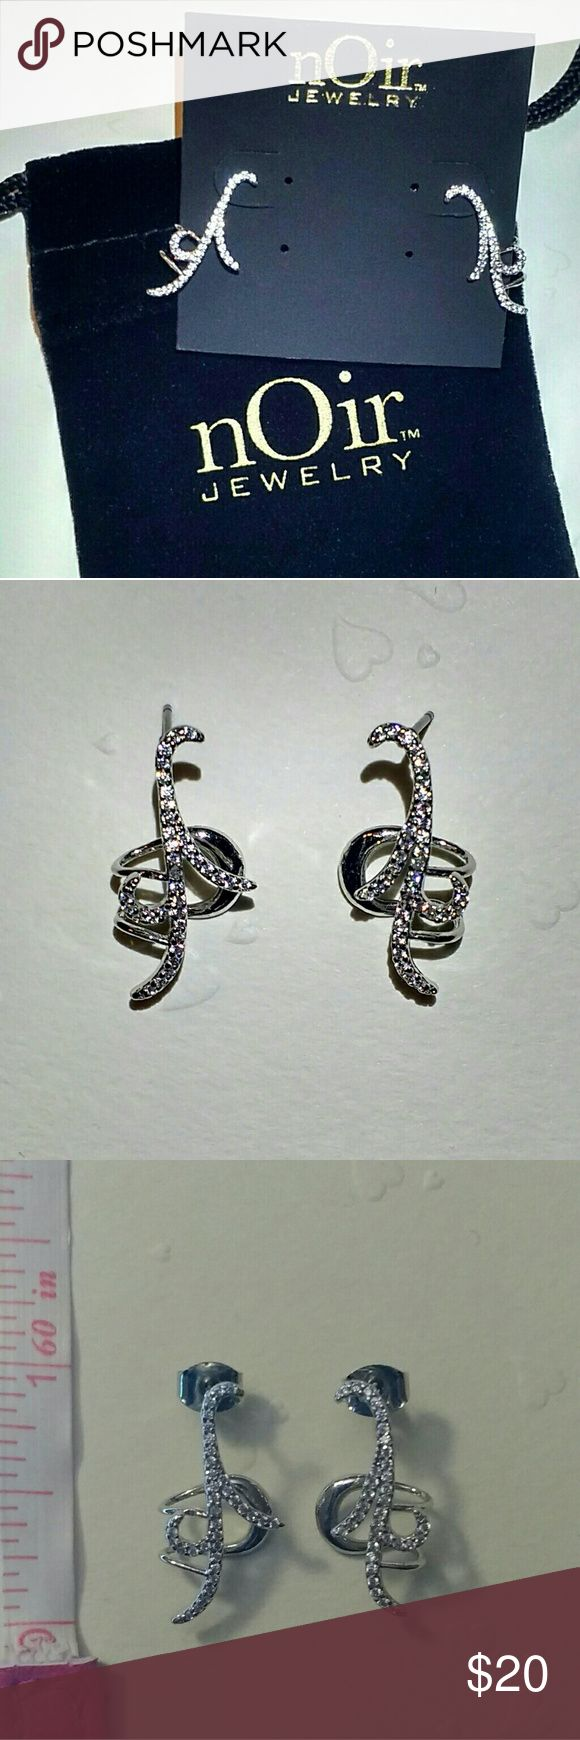 NWT Silver-tone cuff earrings NEW with tags, never worn.  Silver-tone cuff earrings with pierced post backing featuring cubic zirconia in swirling motif. !!! As seen on the pictures, the earrings are not completely identical !!! Fast shipping! nOir Jewelry Jewelry Earrings